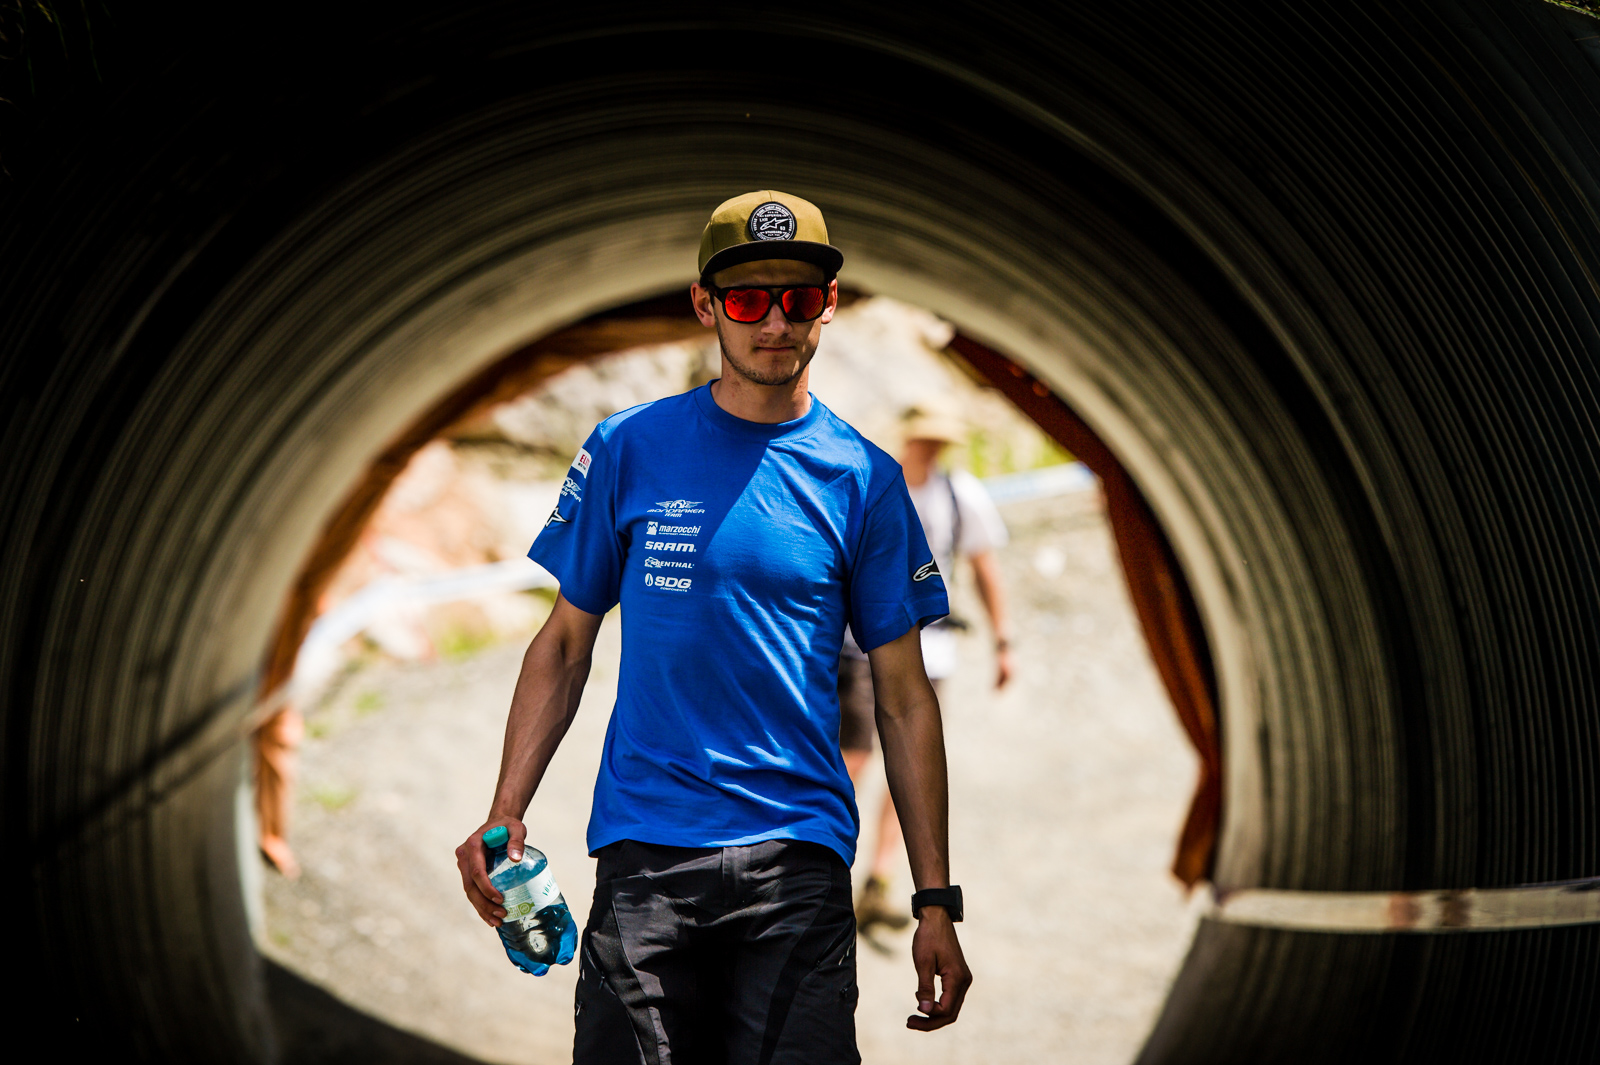 Innes will be out with a shoulder injury following Lenzerheide, but see light at the end of the tunnel.